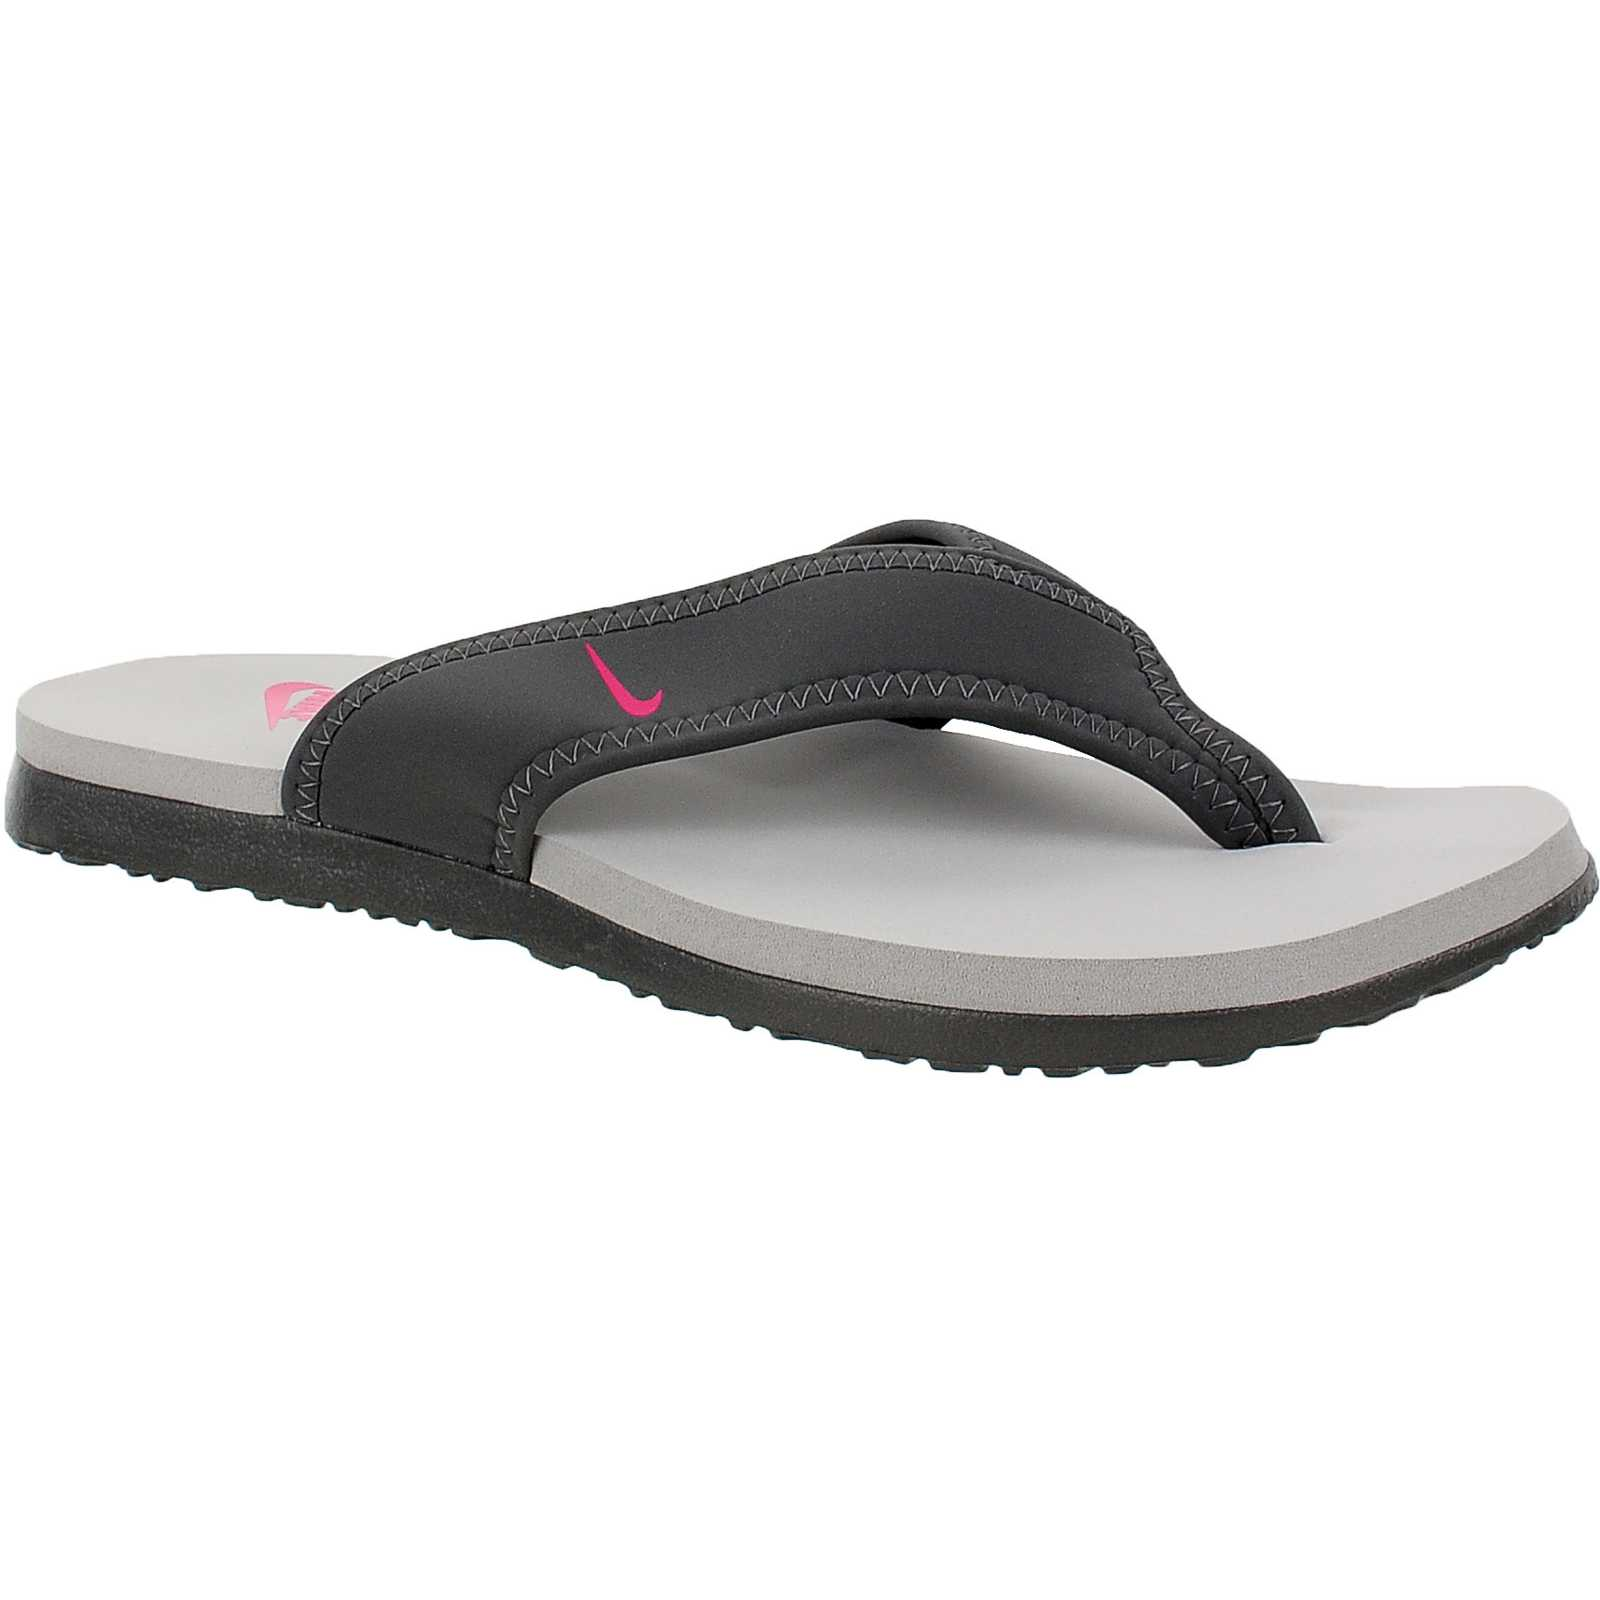 Slapi barbati Nike Celso Thong Plus 307812-069